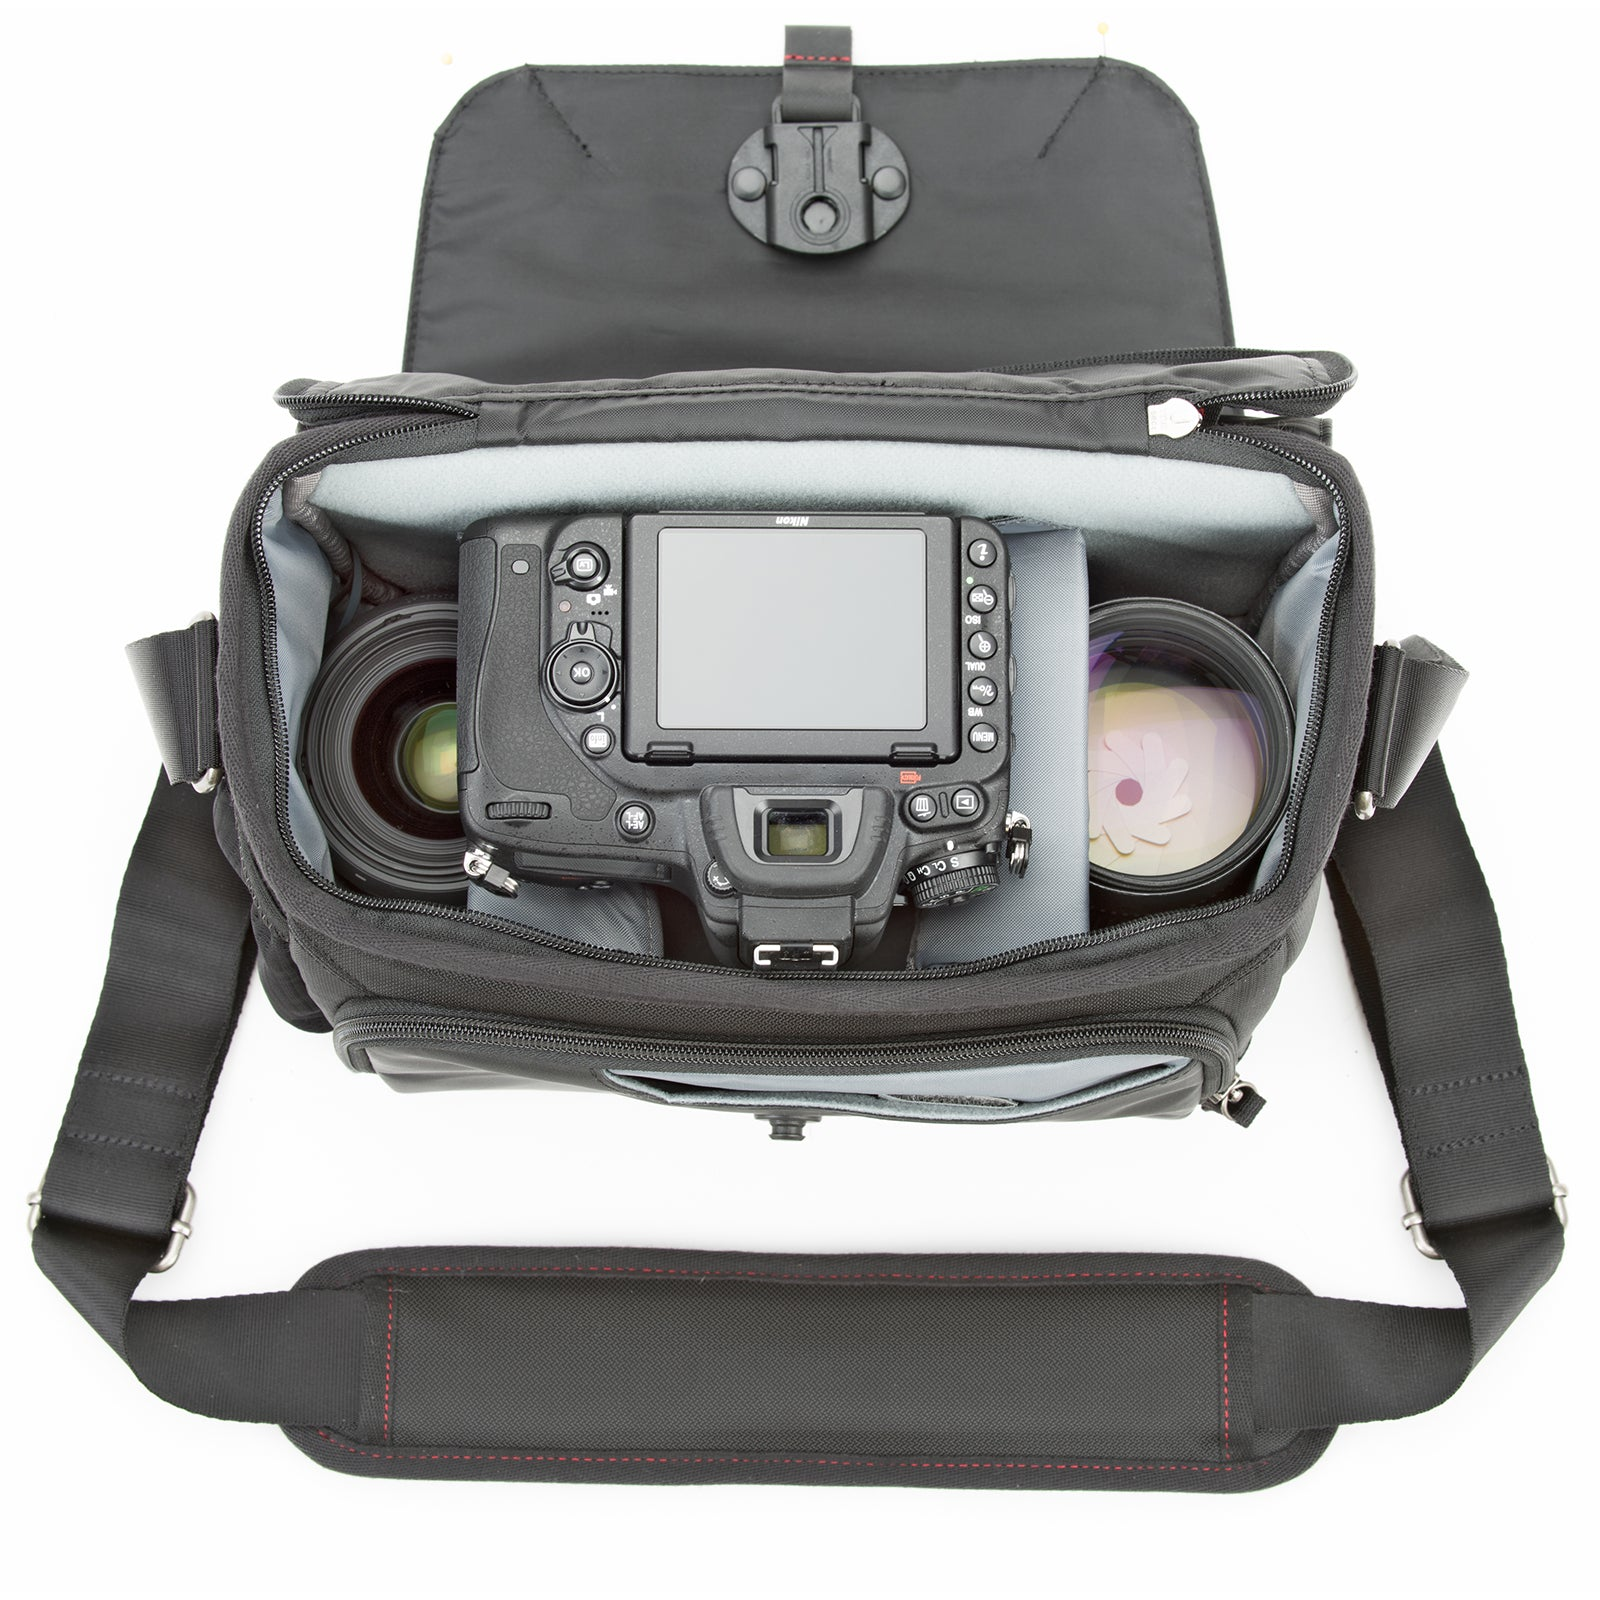 f2e067d68b Spectral 10 - Best full-featured camera shoulder bag for the price ...